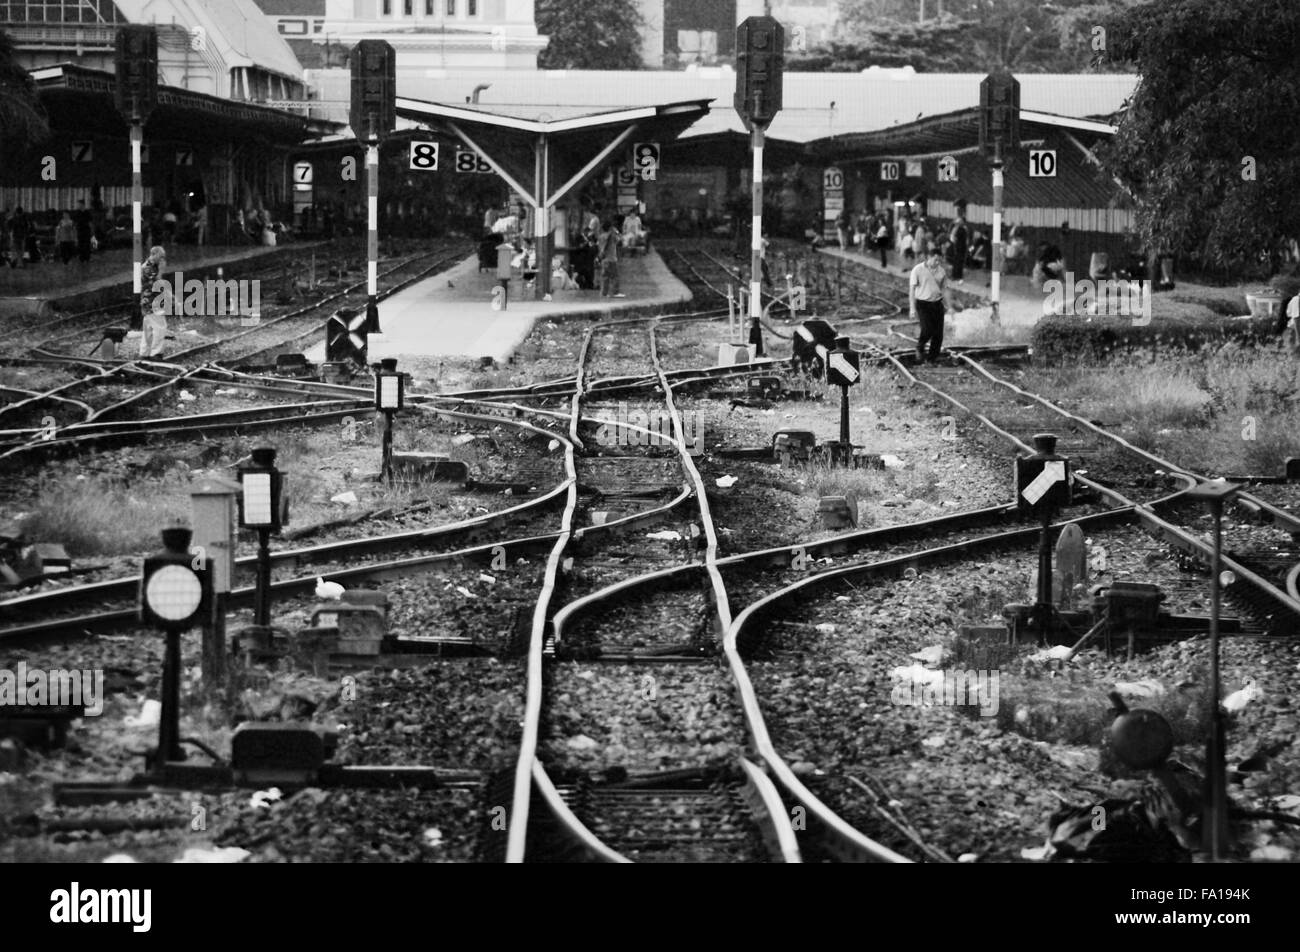 Railway Lines going in to Bangkok station - Stock Image